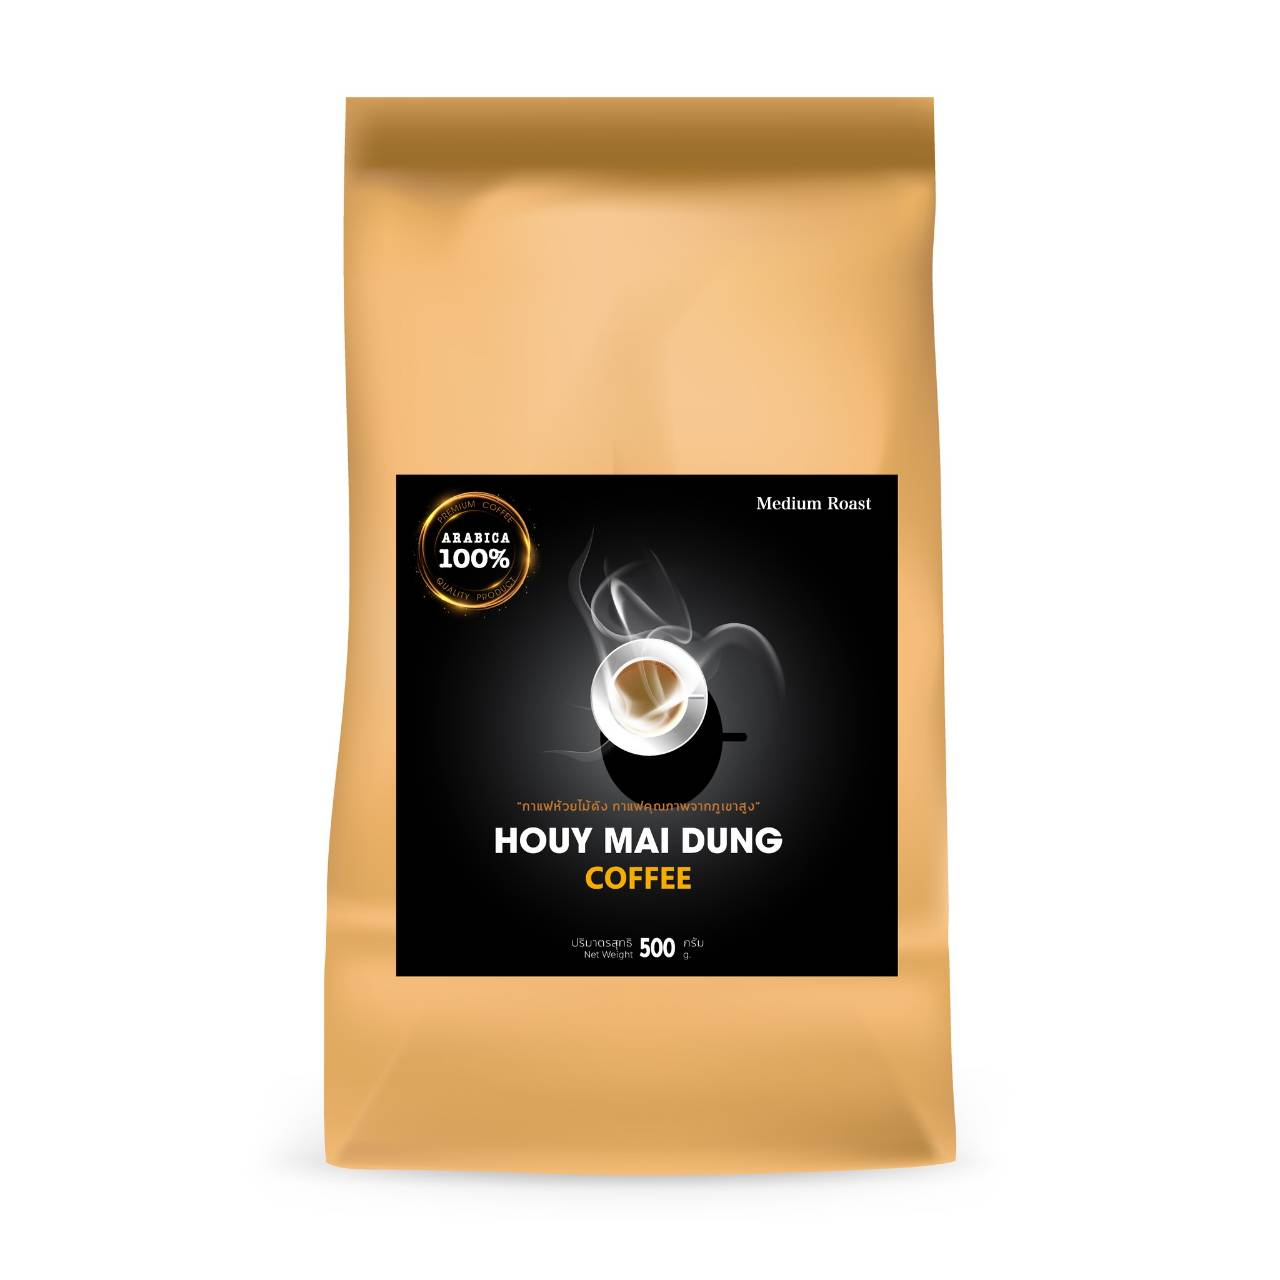 Houy Mai Dung Coffee